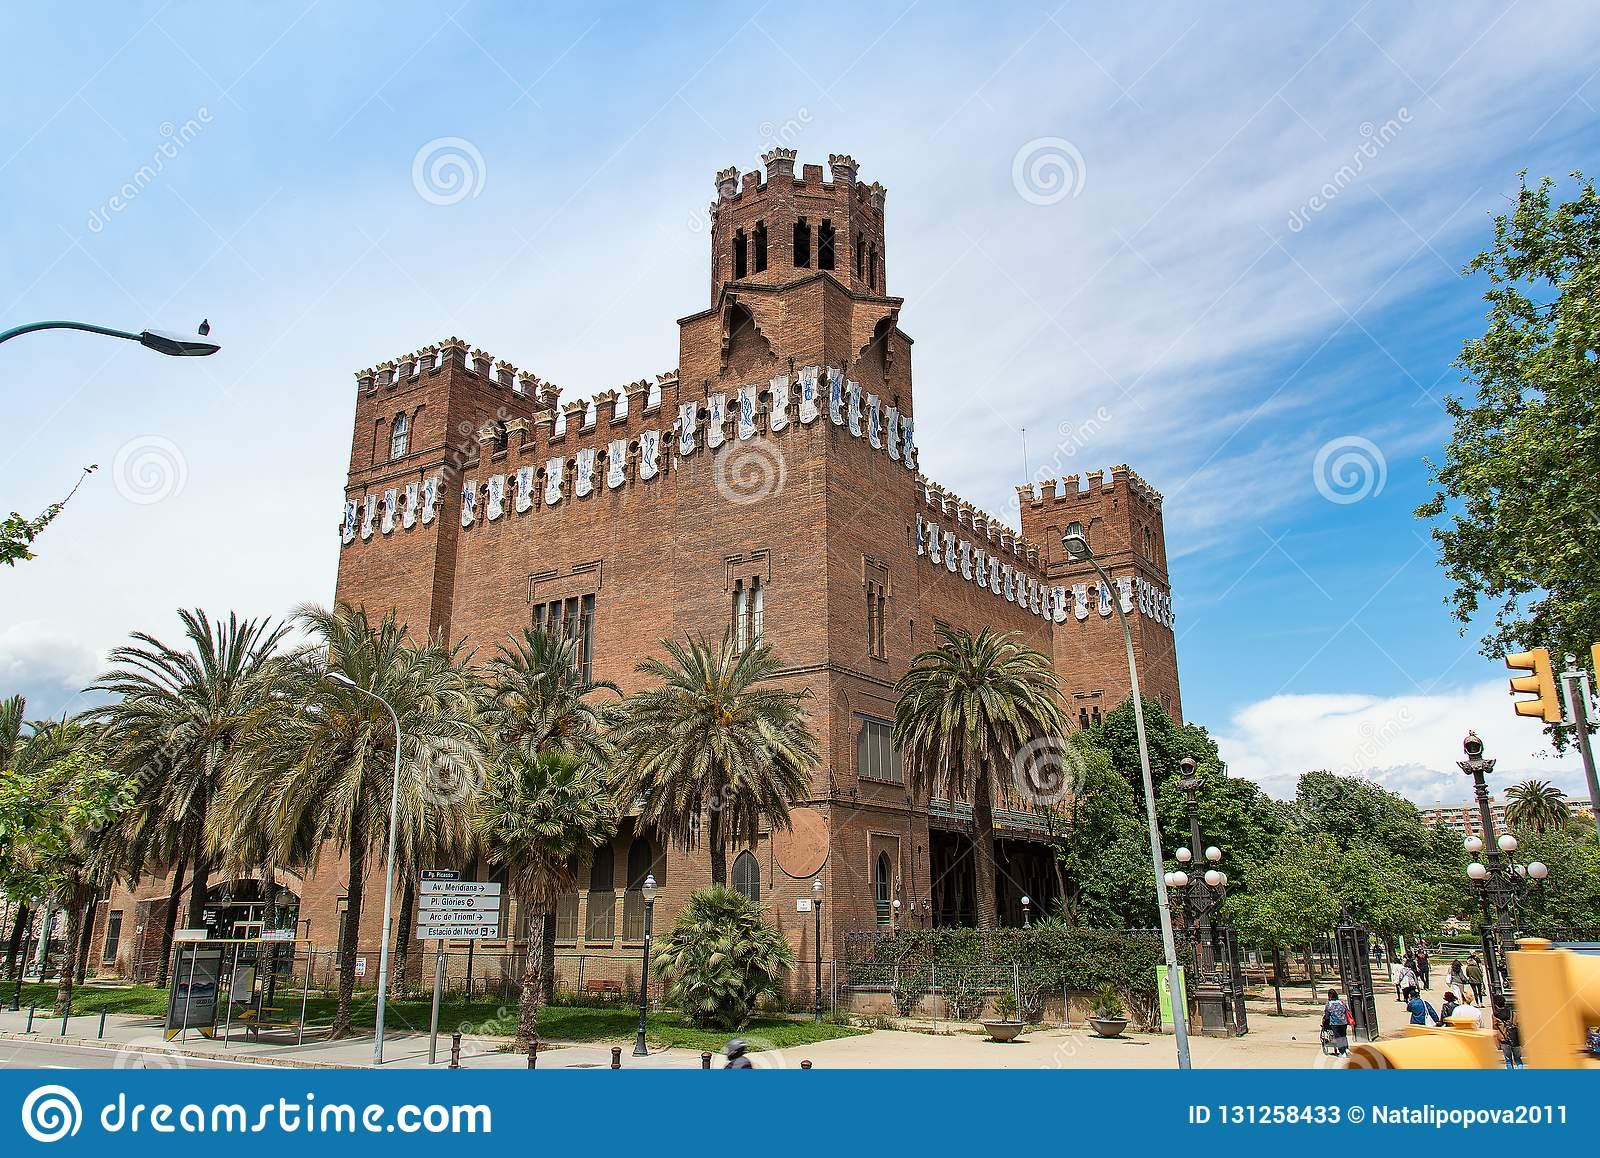 Castle of the Three Dragons in Barcelona, Spain -14 May 2018.